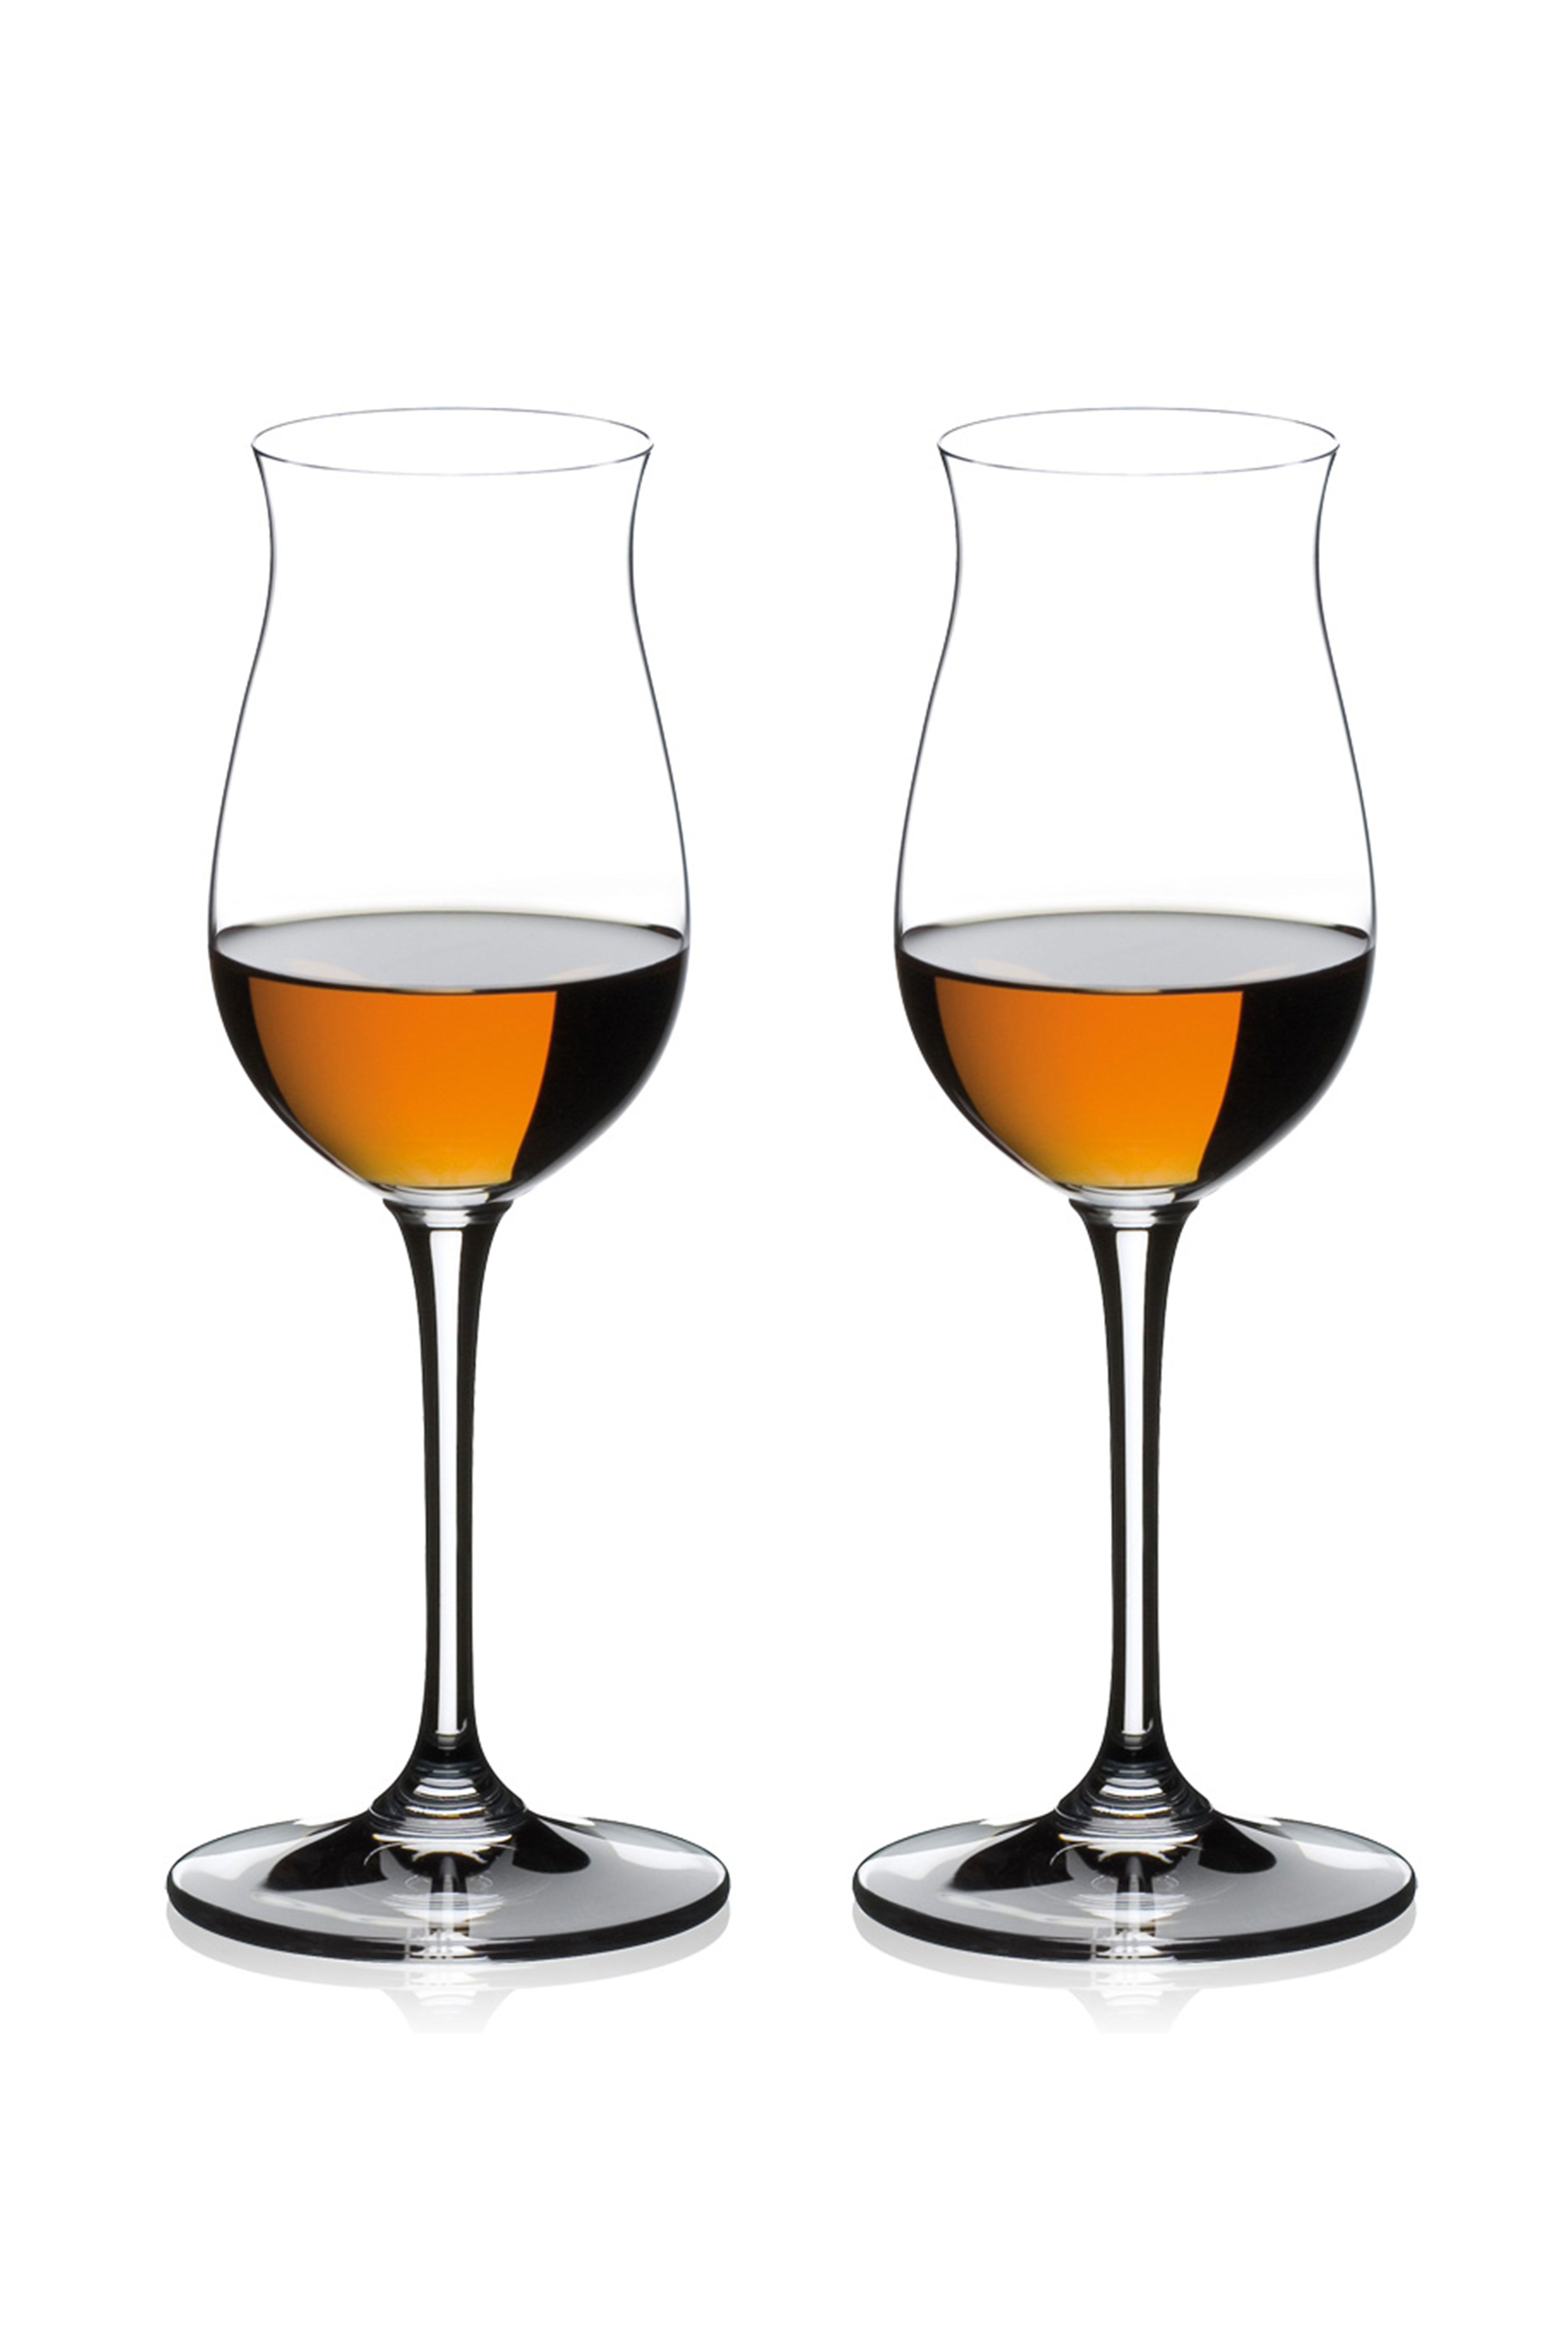 13 Best Cognac & Brandy Glasses for 2017 - Unique Snifter ...